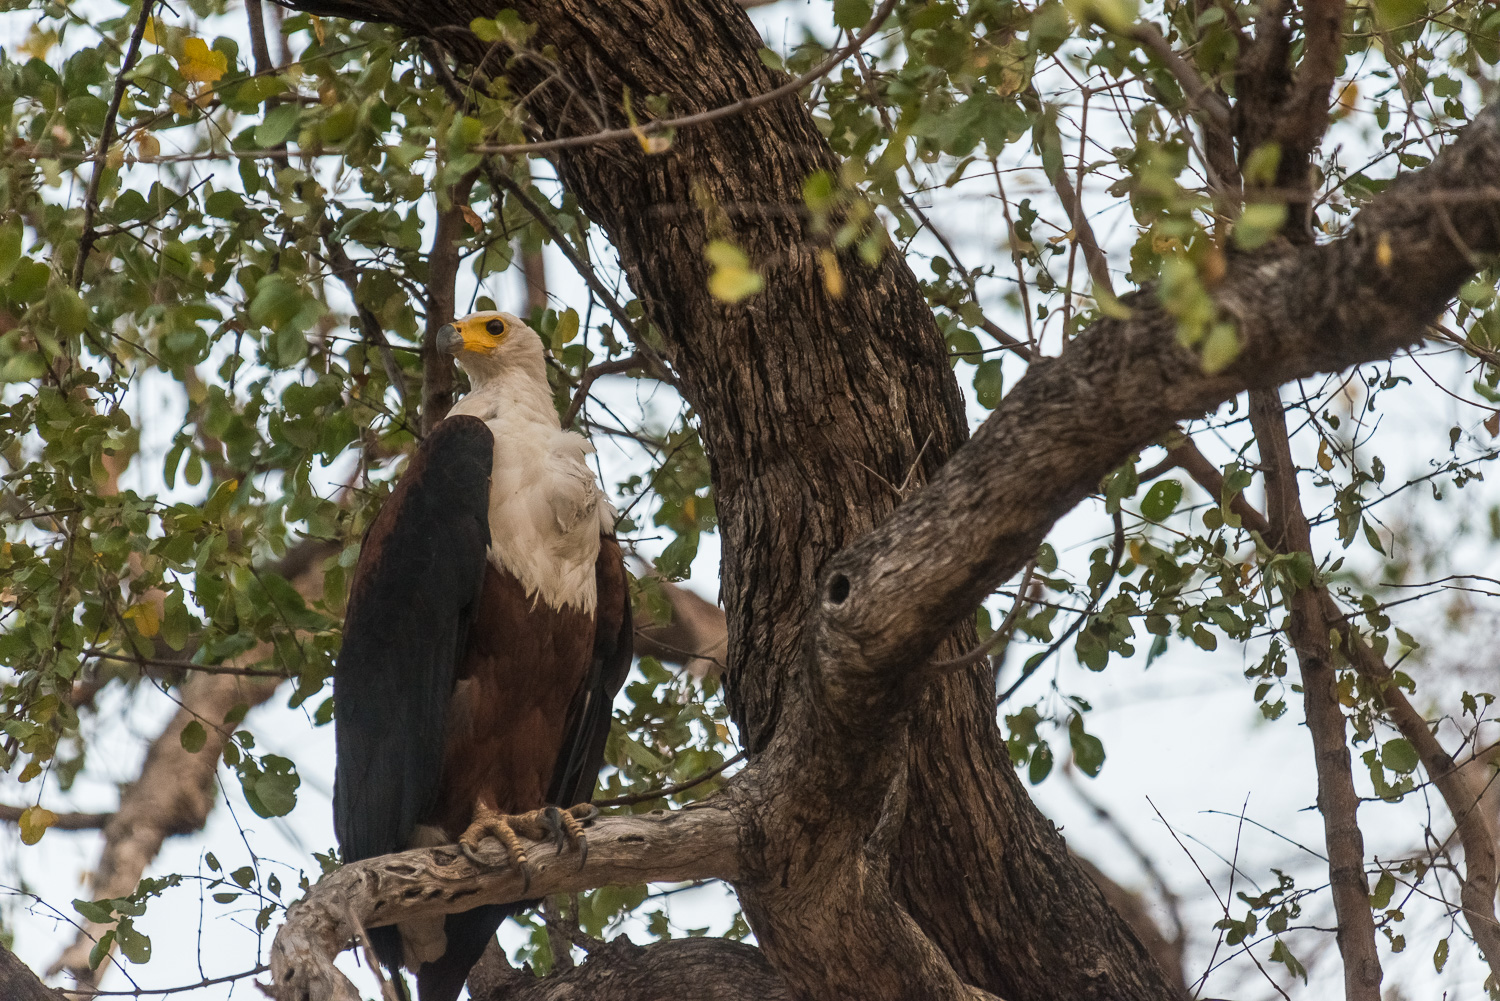 Fish Eagle, Bilimungwe Lodge, South Luangwa, Zambia